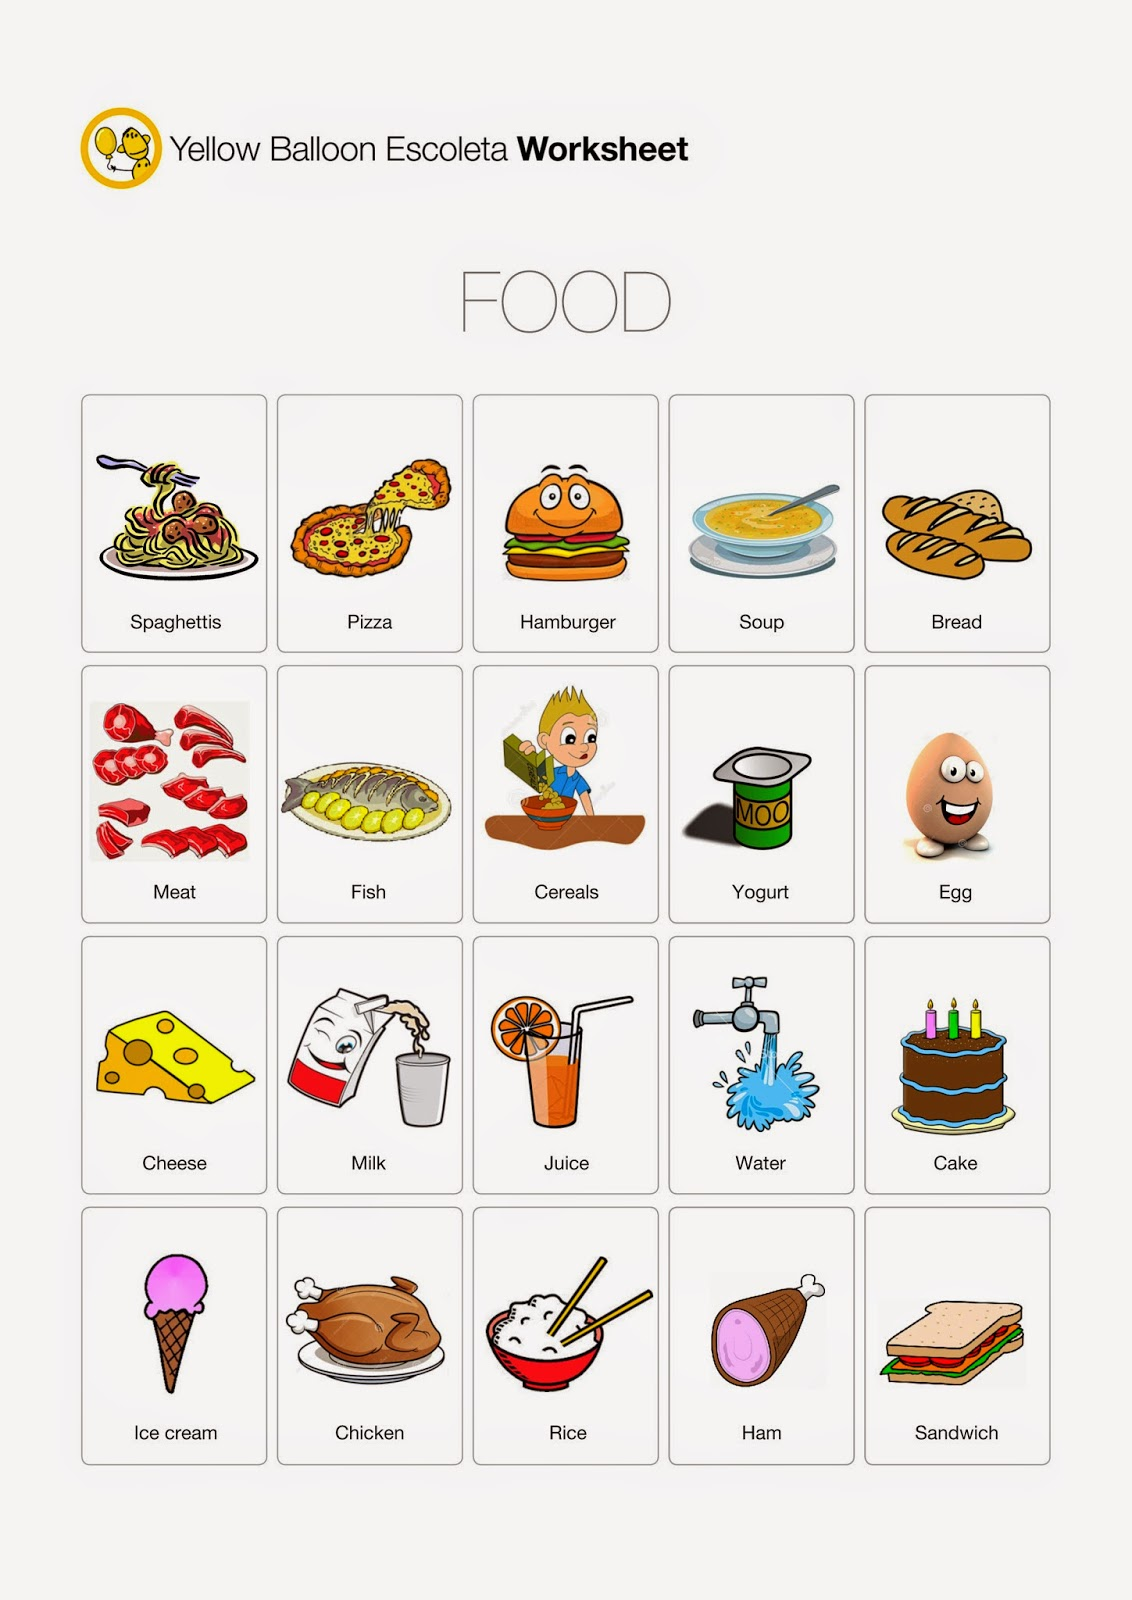 Yellow Balloon Escoleta Food Worksheet